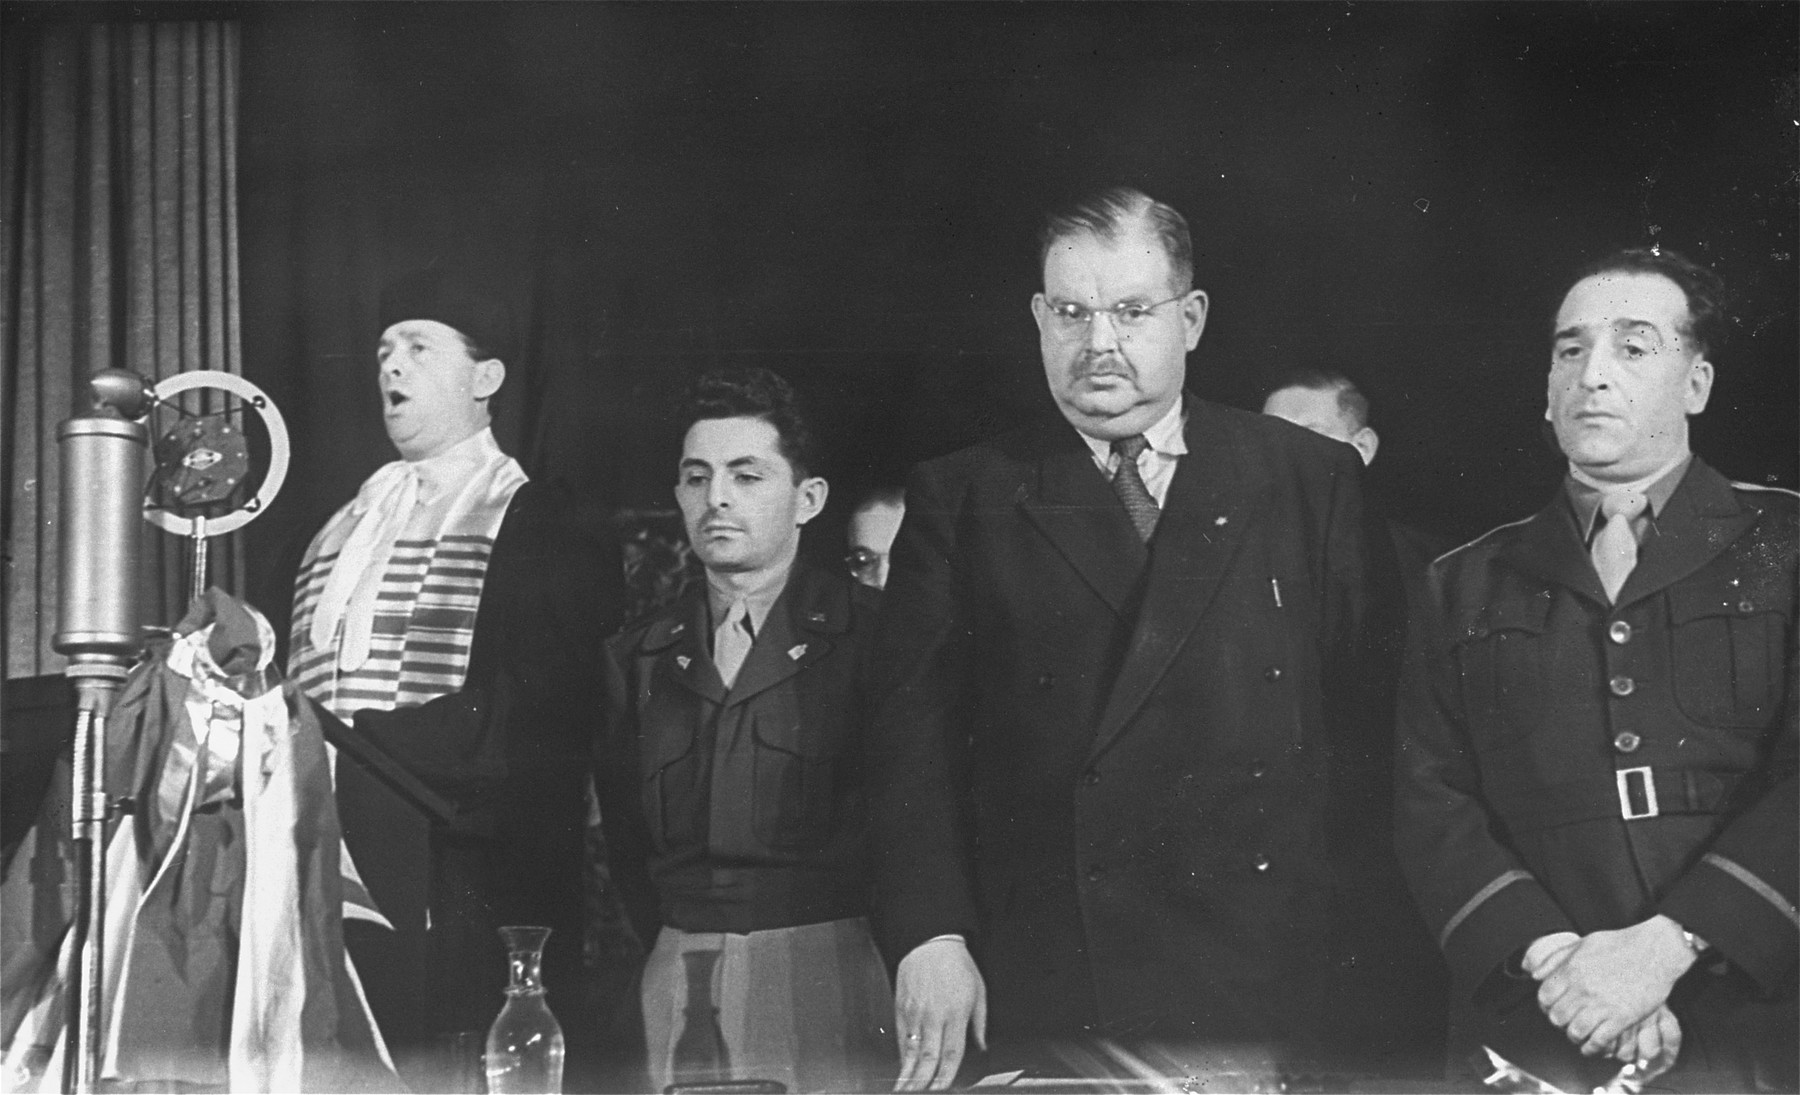 A cantor sings at a public ceremony sponsored by the Central Committee of Liberated Jews in the U.S. Zone of Germany.    Among those pictured is U.S. Army chaplain Abraham Klausner (second from the left) and Philipp Auerbach (second from the right).